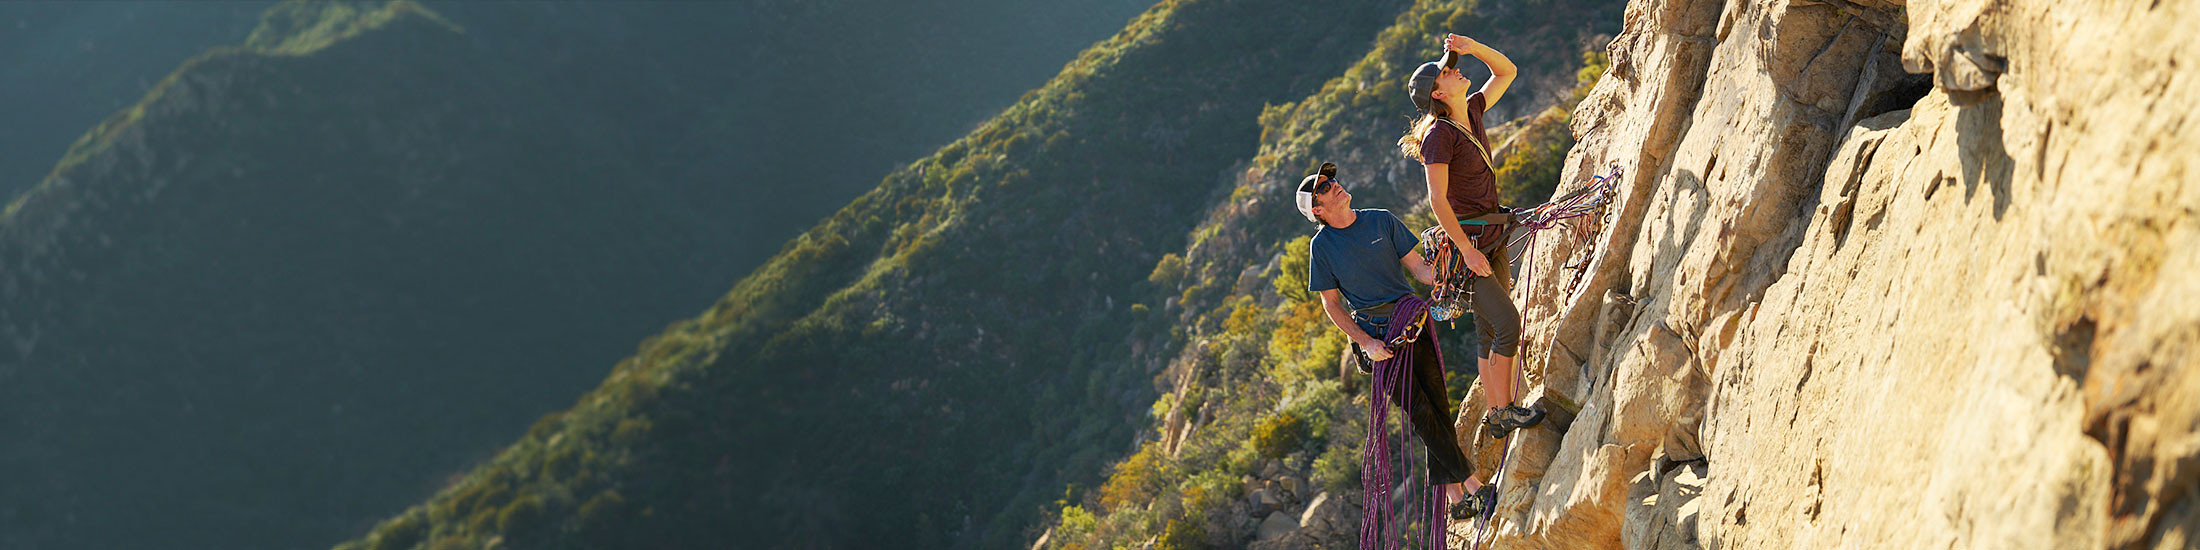 Eddie Bauer climbing athlete Ben Ditto and companion navigate a route on Gibraltar Rock in California's Los Padres National Forest